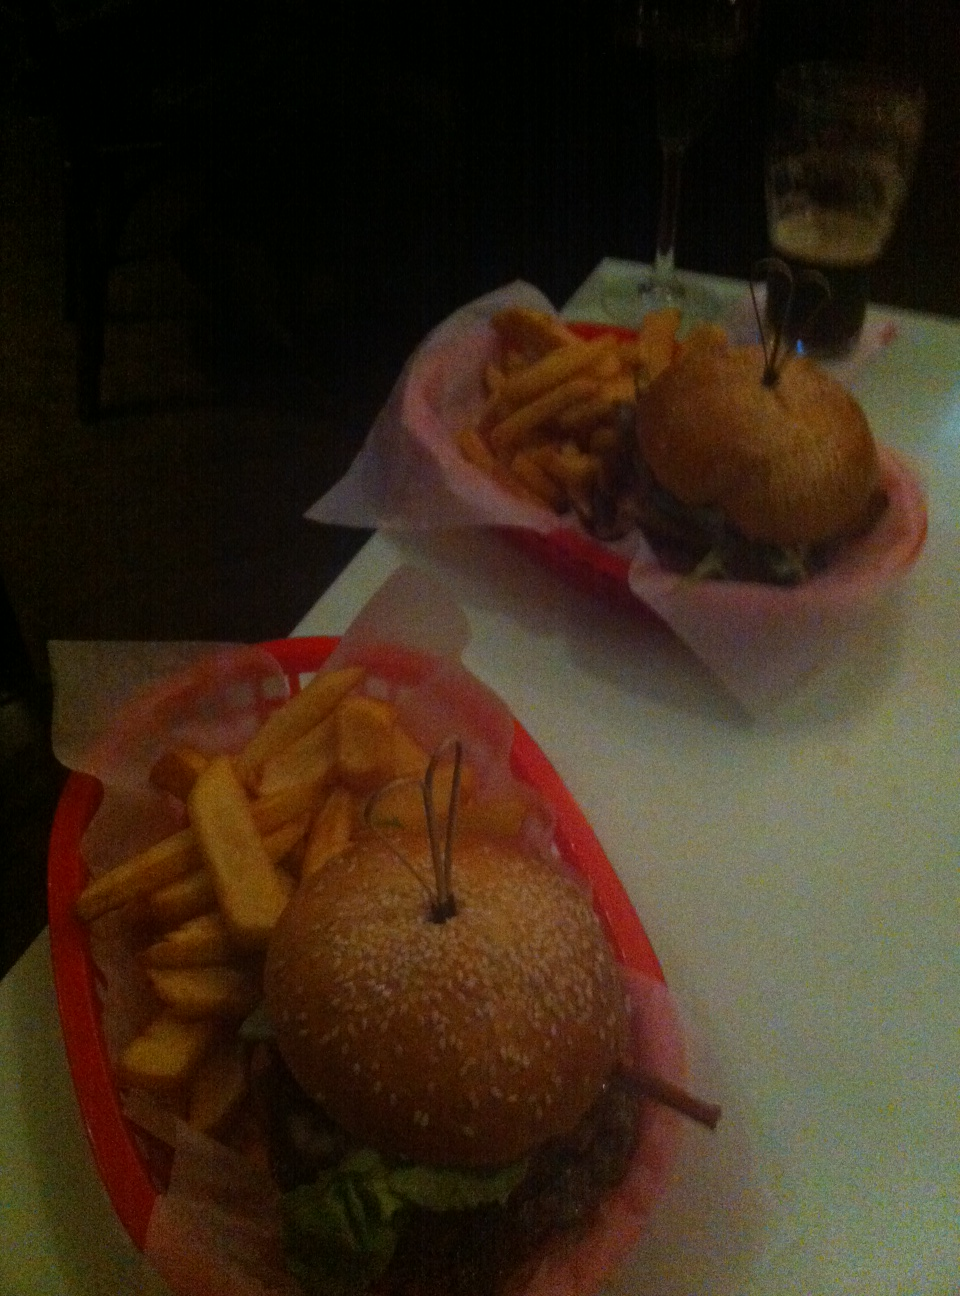 Old school burgers - well apart from the girly red basket